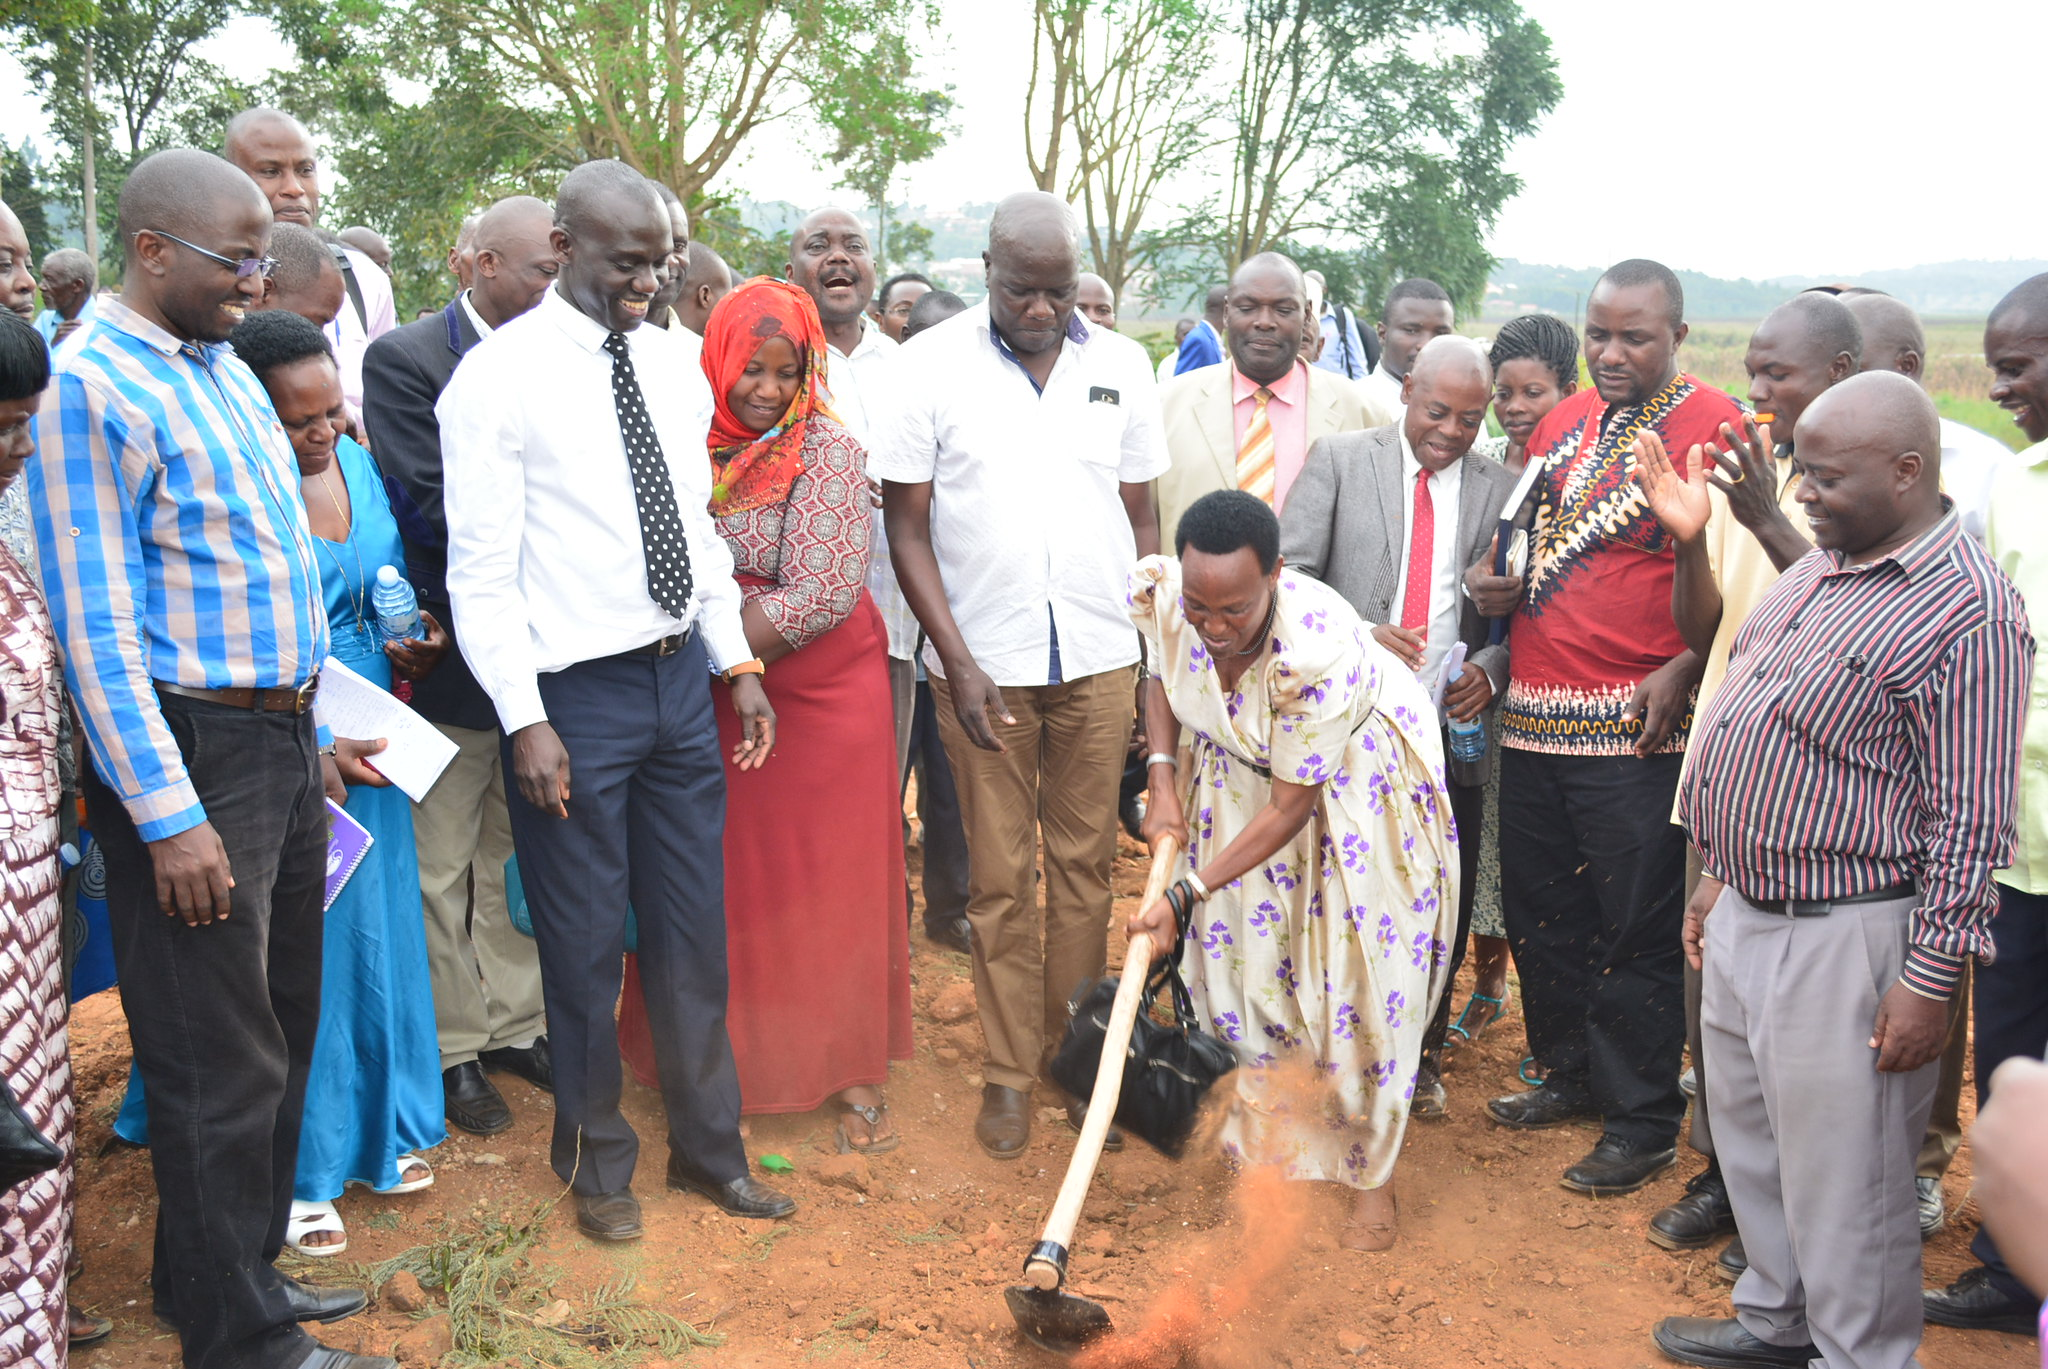 Groundbreaking event for pig abattoir in Masaka, Uganda